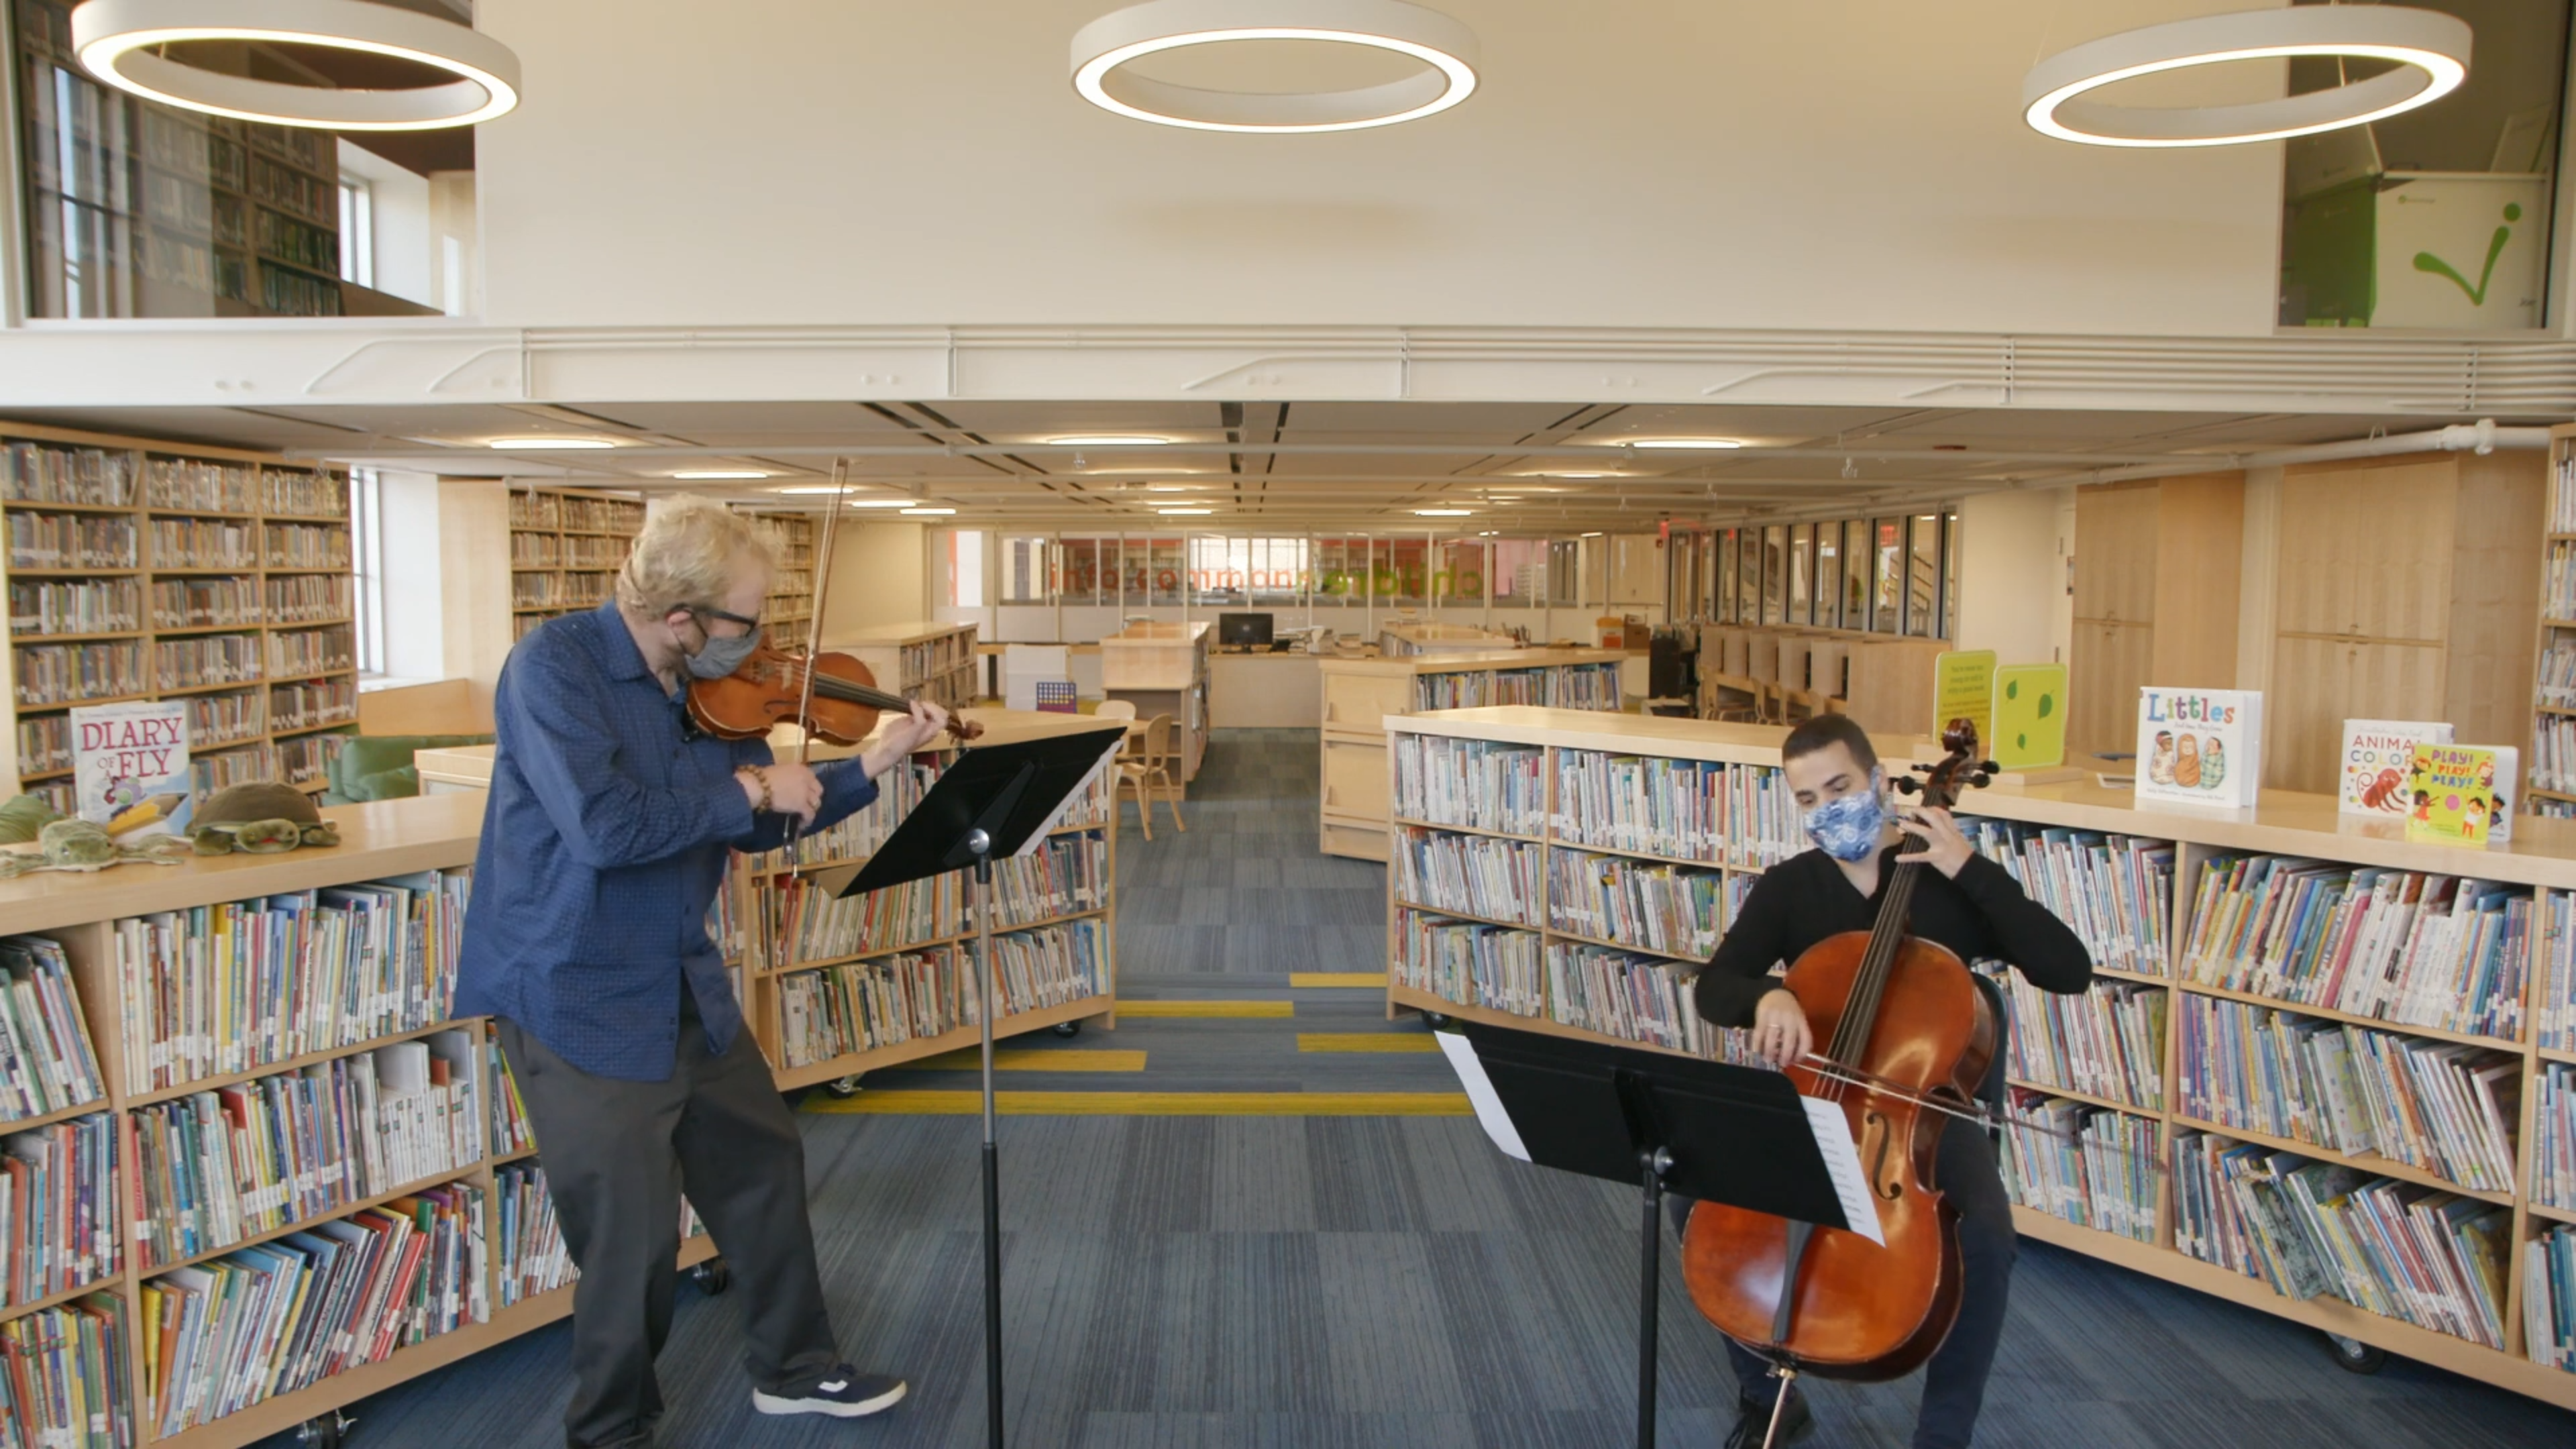 CMW duet in the Children's Library